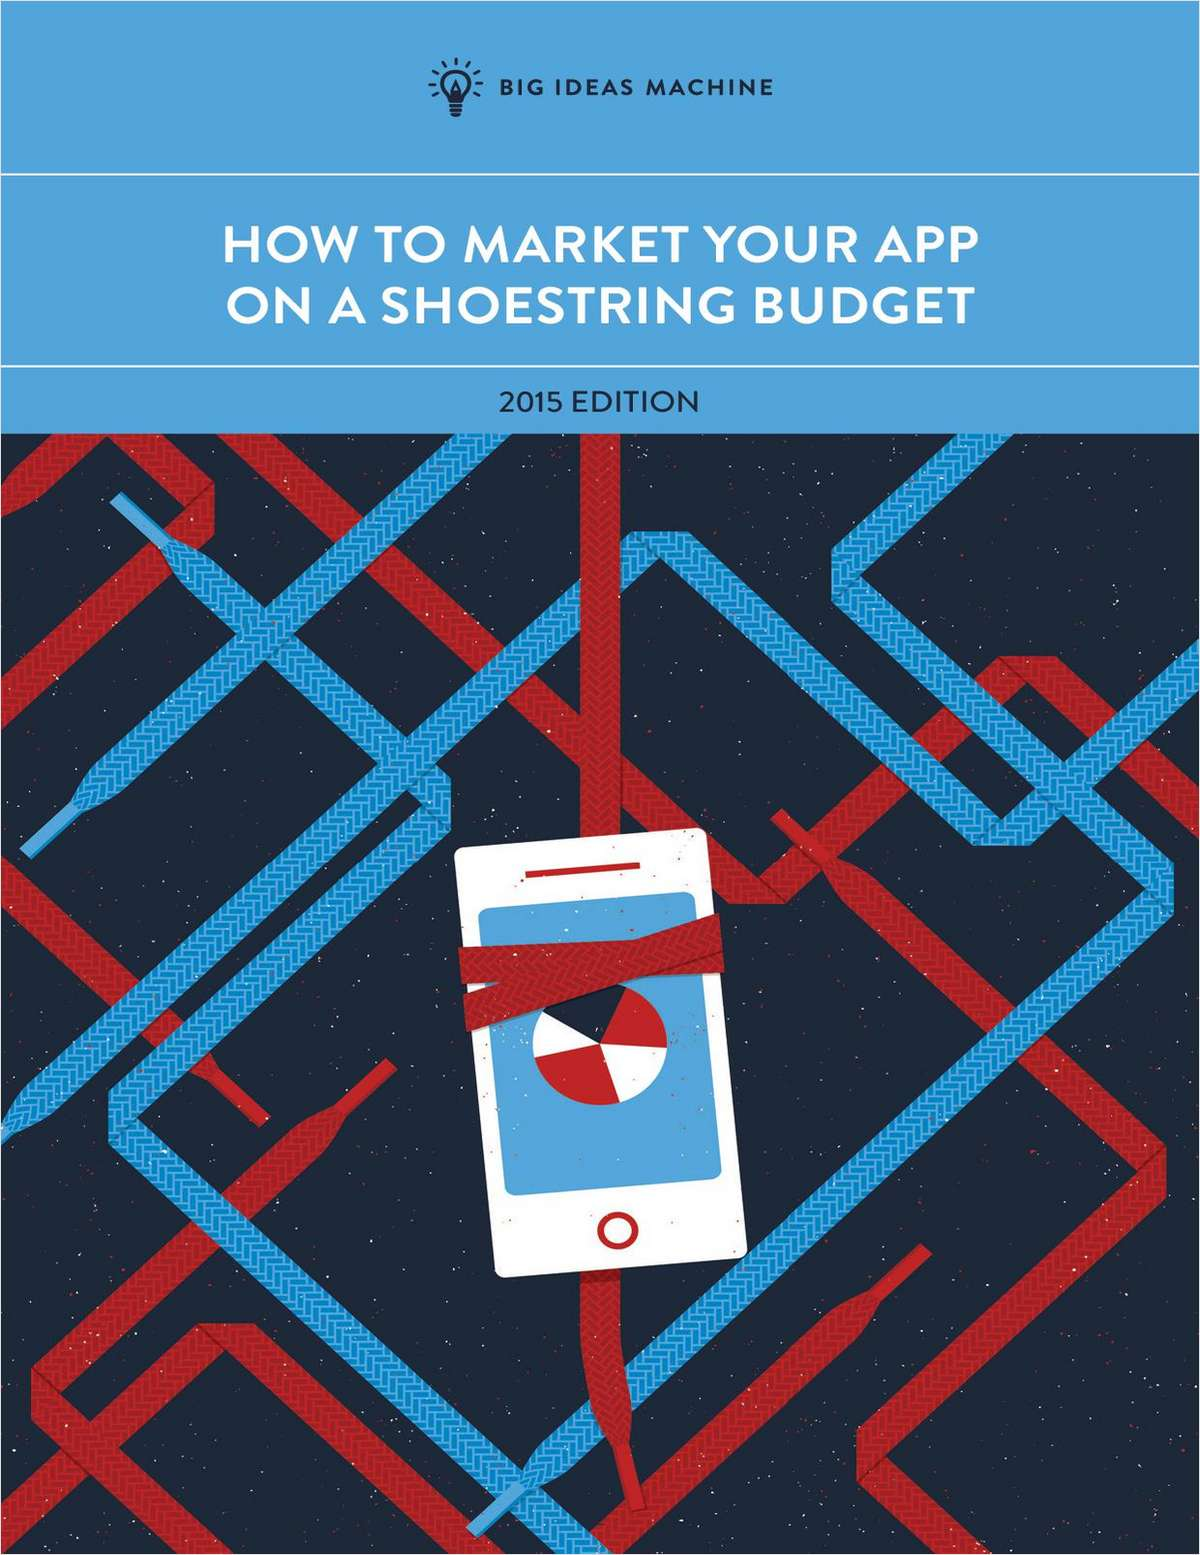 How to Market Your App on a Shoestring Budget